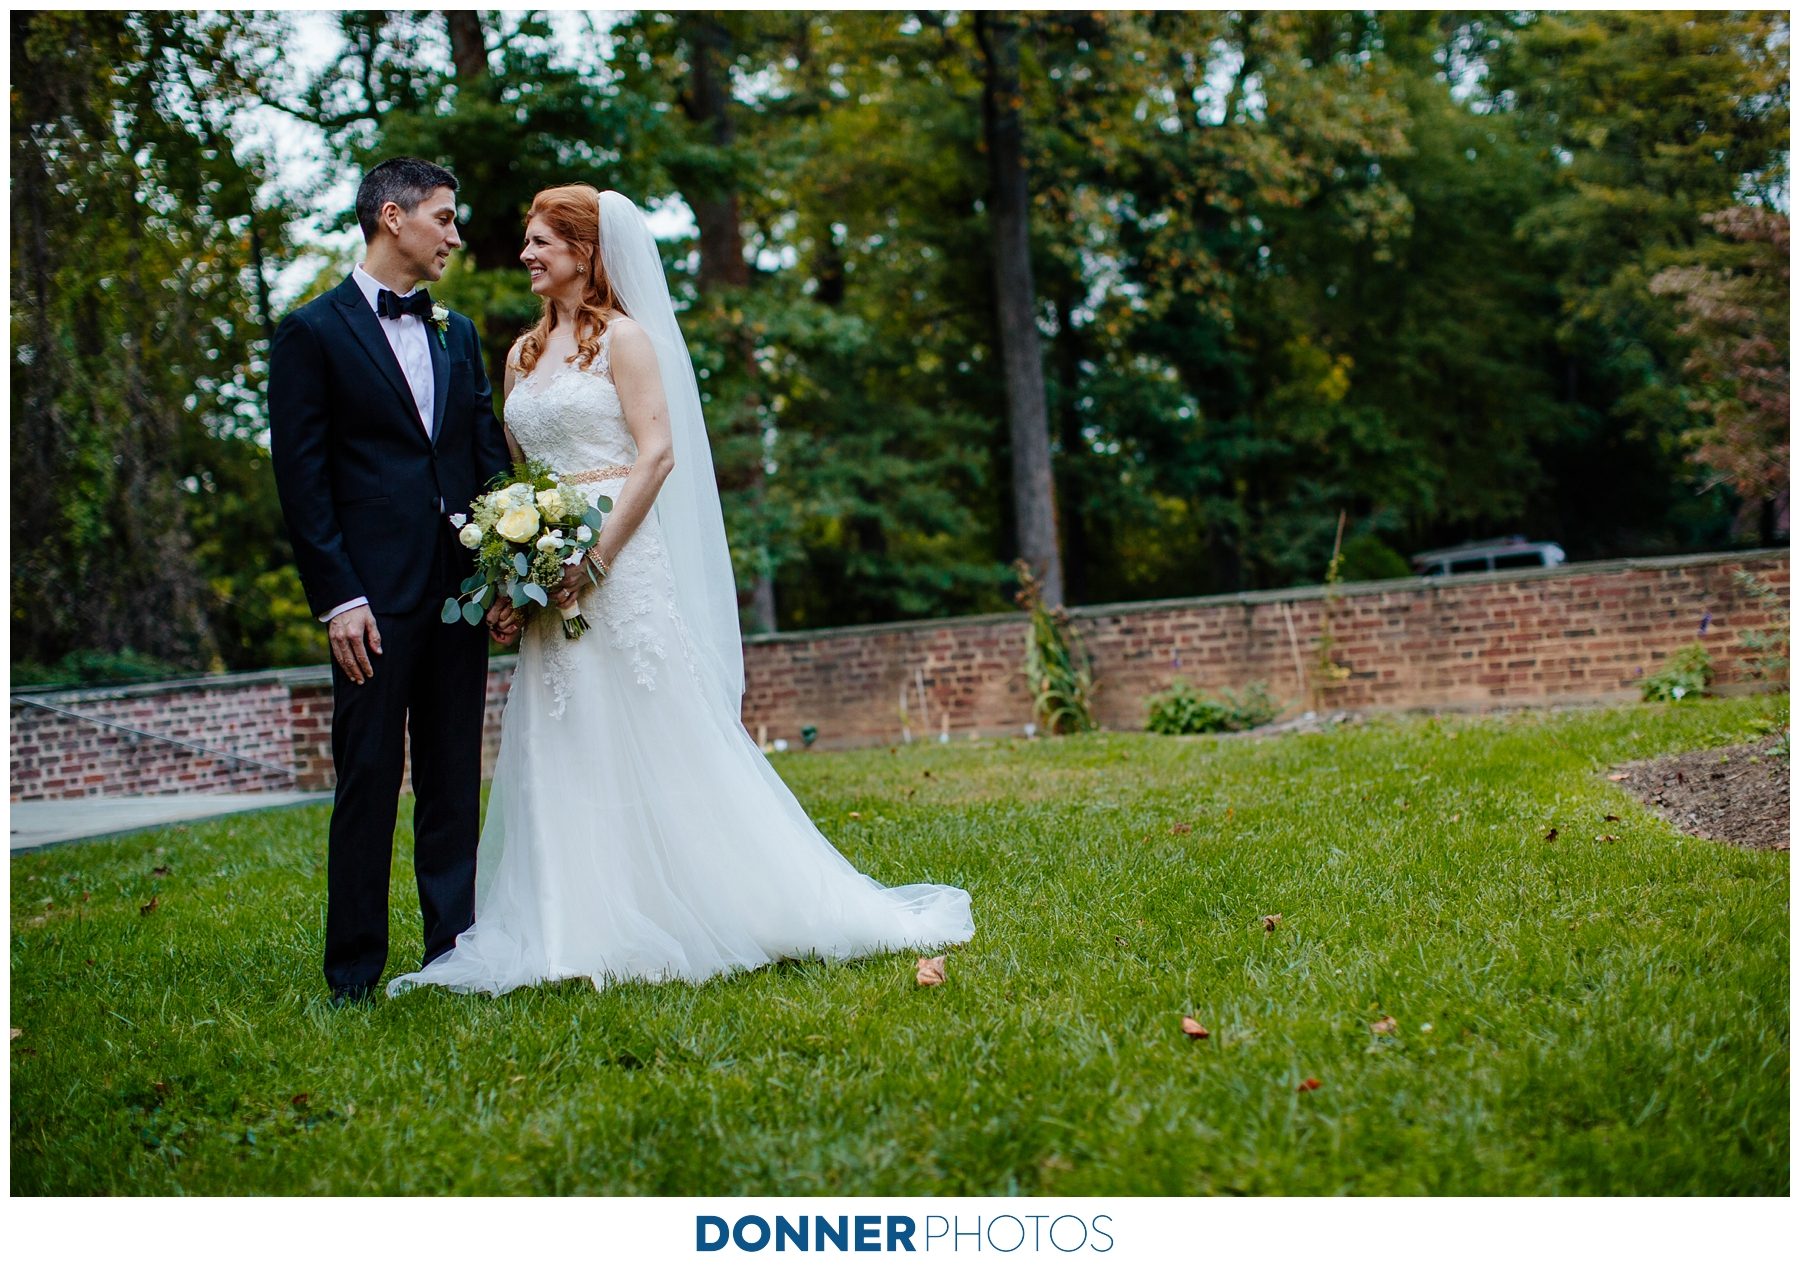 FAIRFAX-MANASSAS VA WEDDING: COLLEEN & PAUL